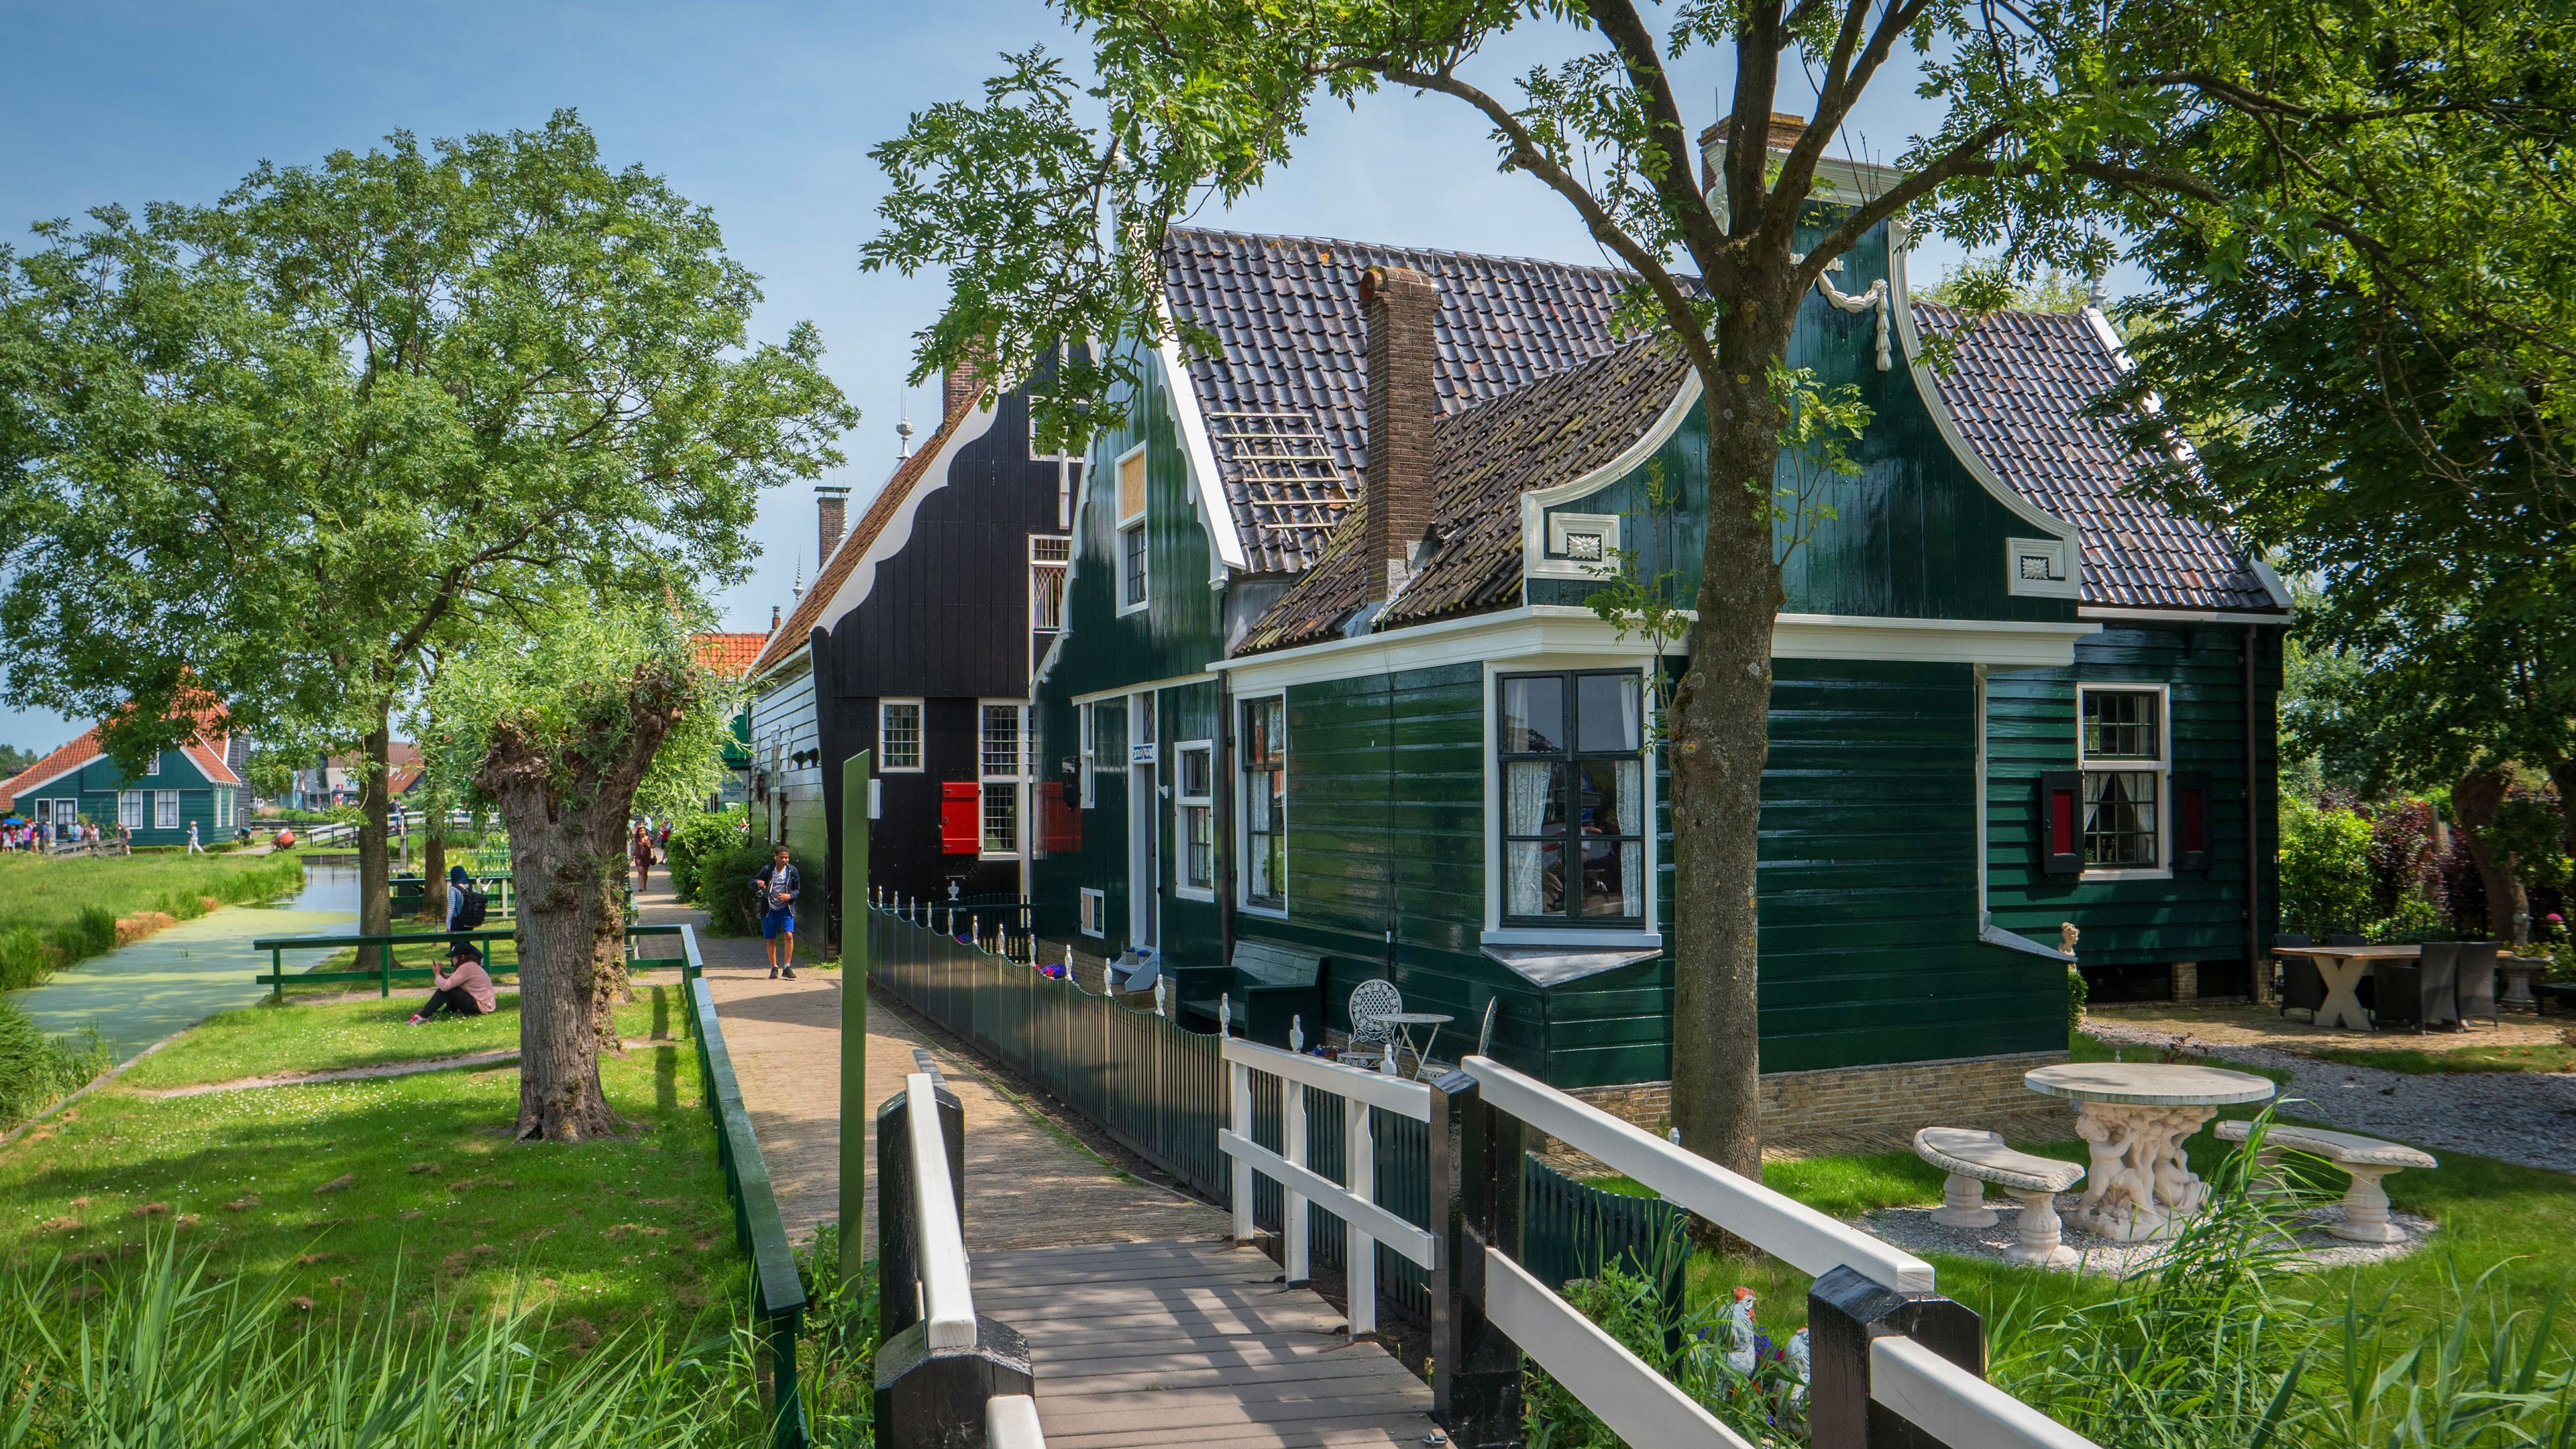 House along a plank path in the Netherlands